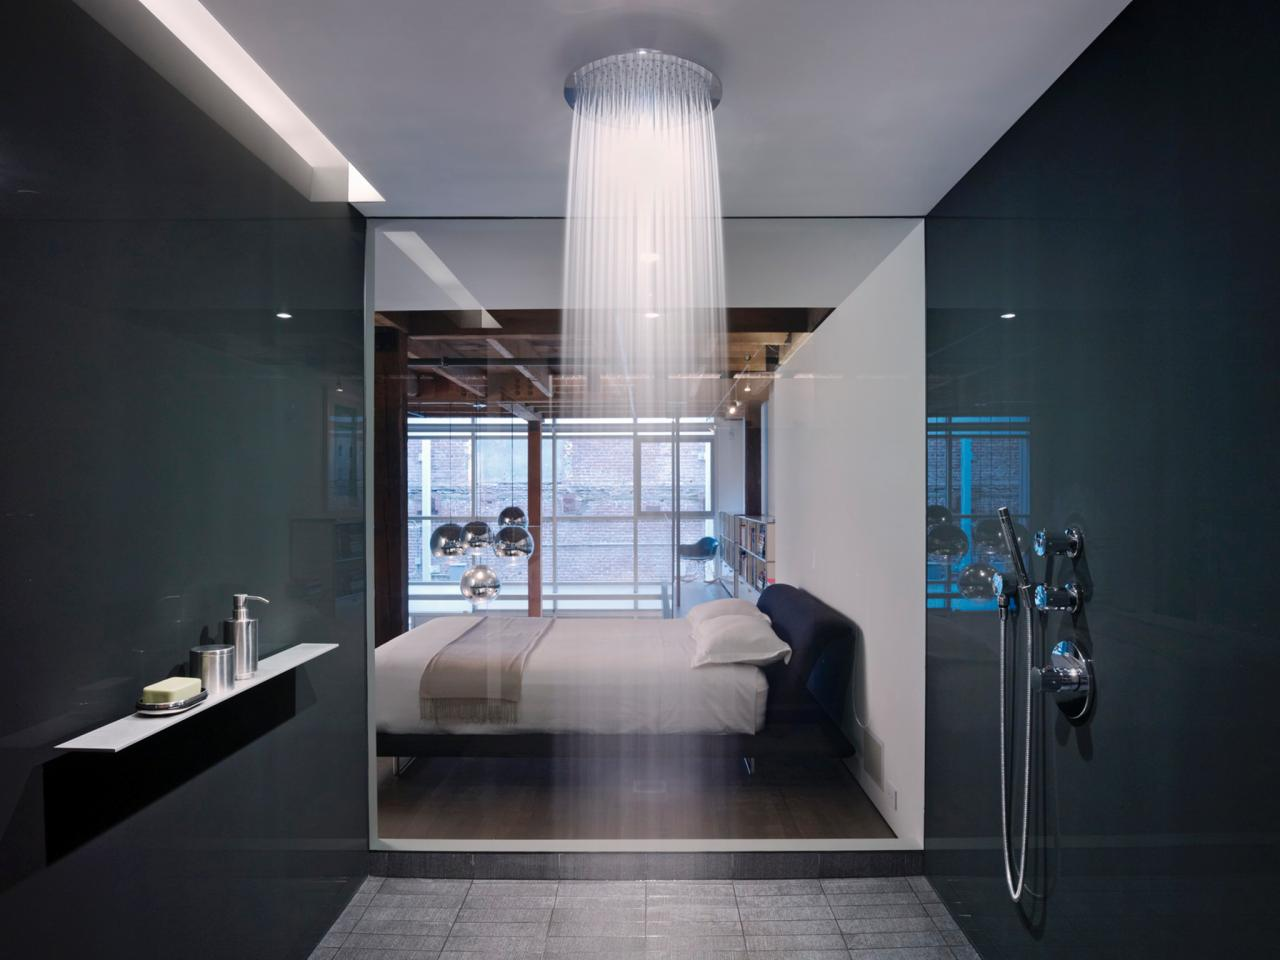 large rain shower head